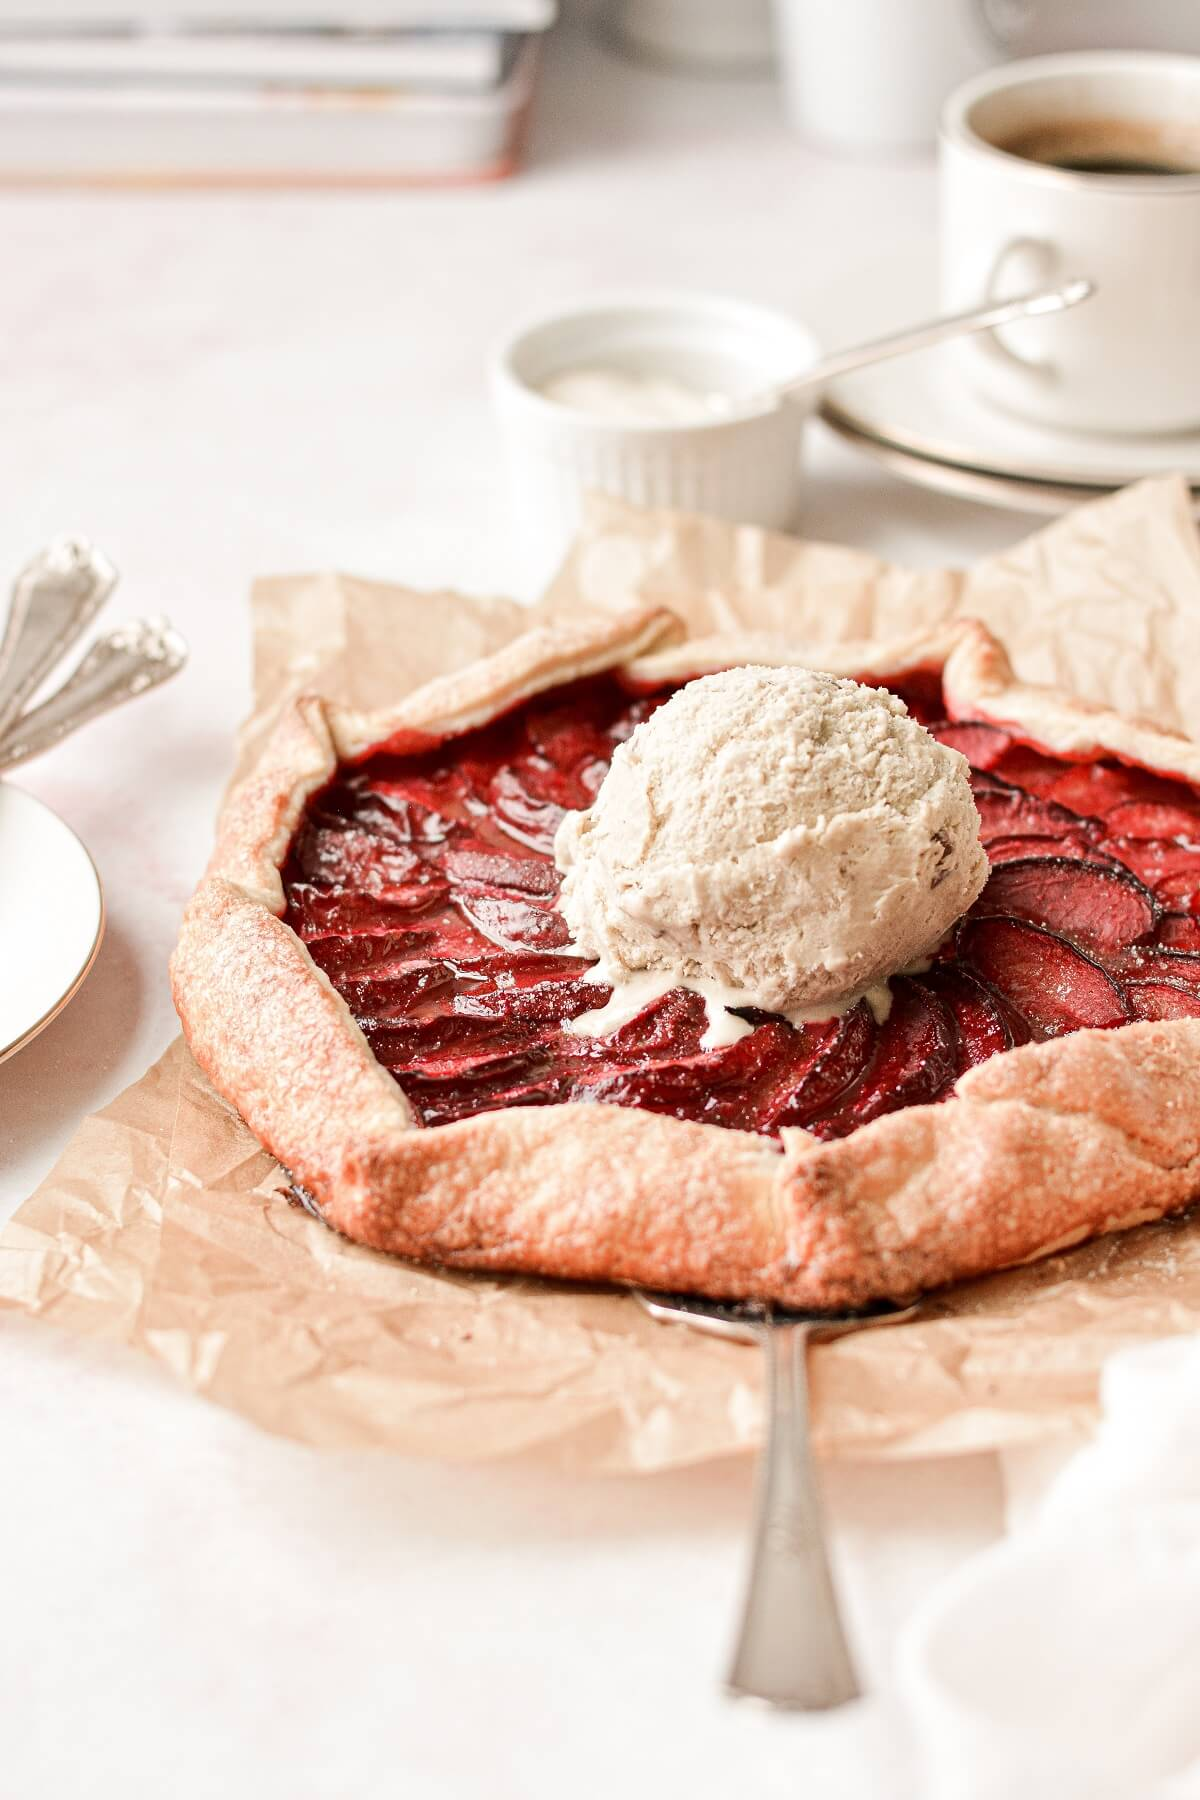 Plum galette topped with a scoop of ice cream.